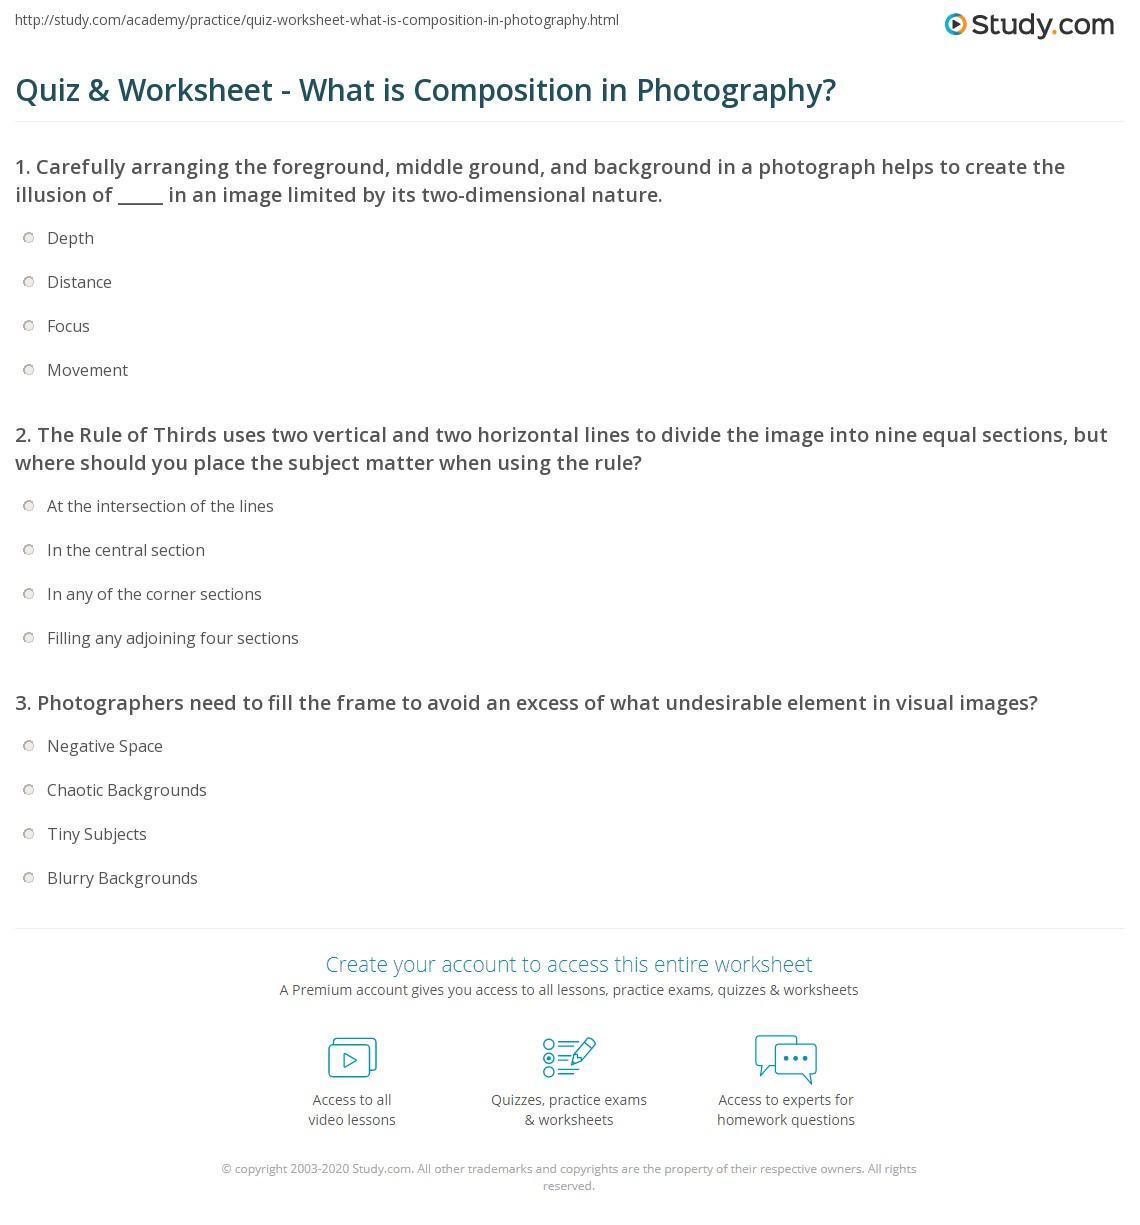 Quiz & Worksheet - What is Composition in Photography? | Study.com